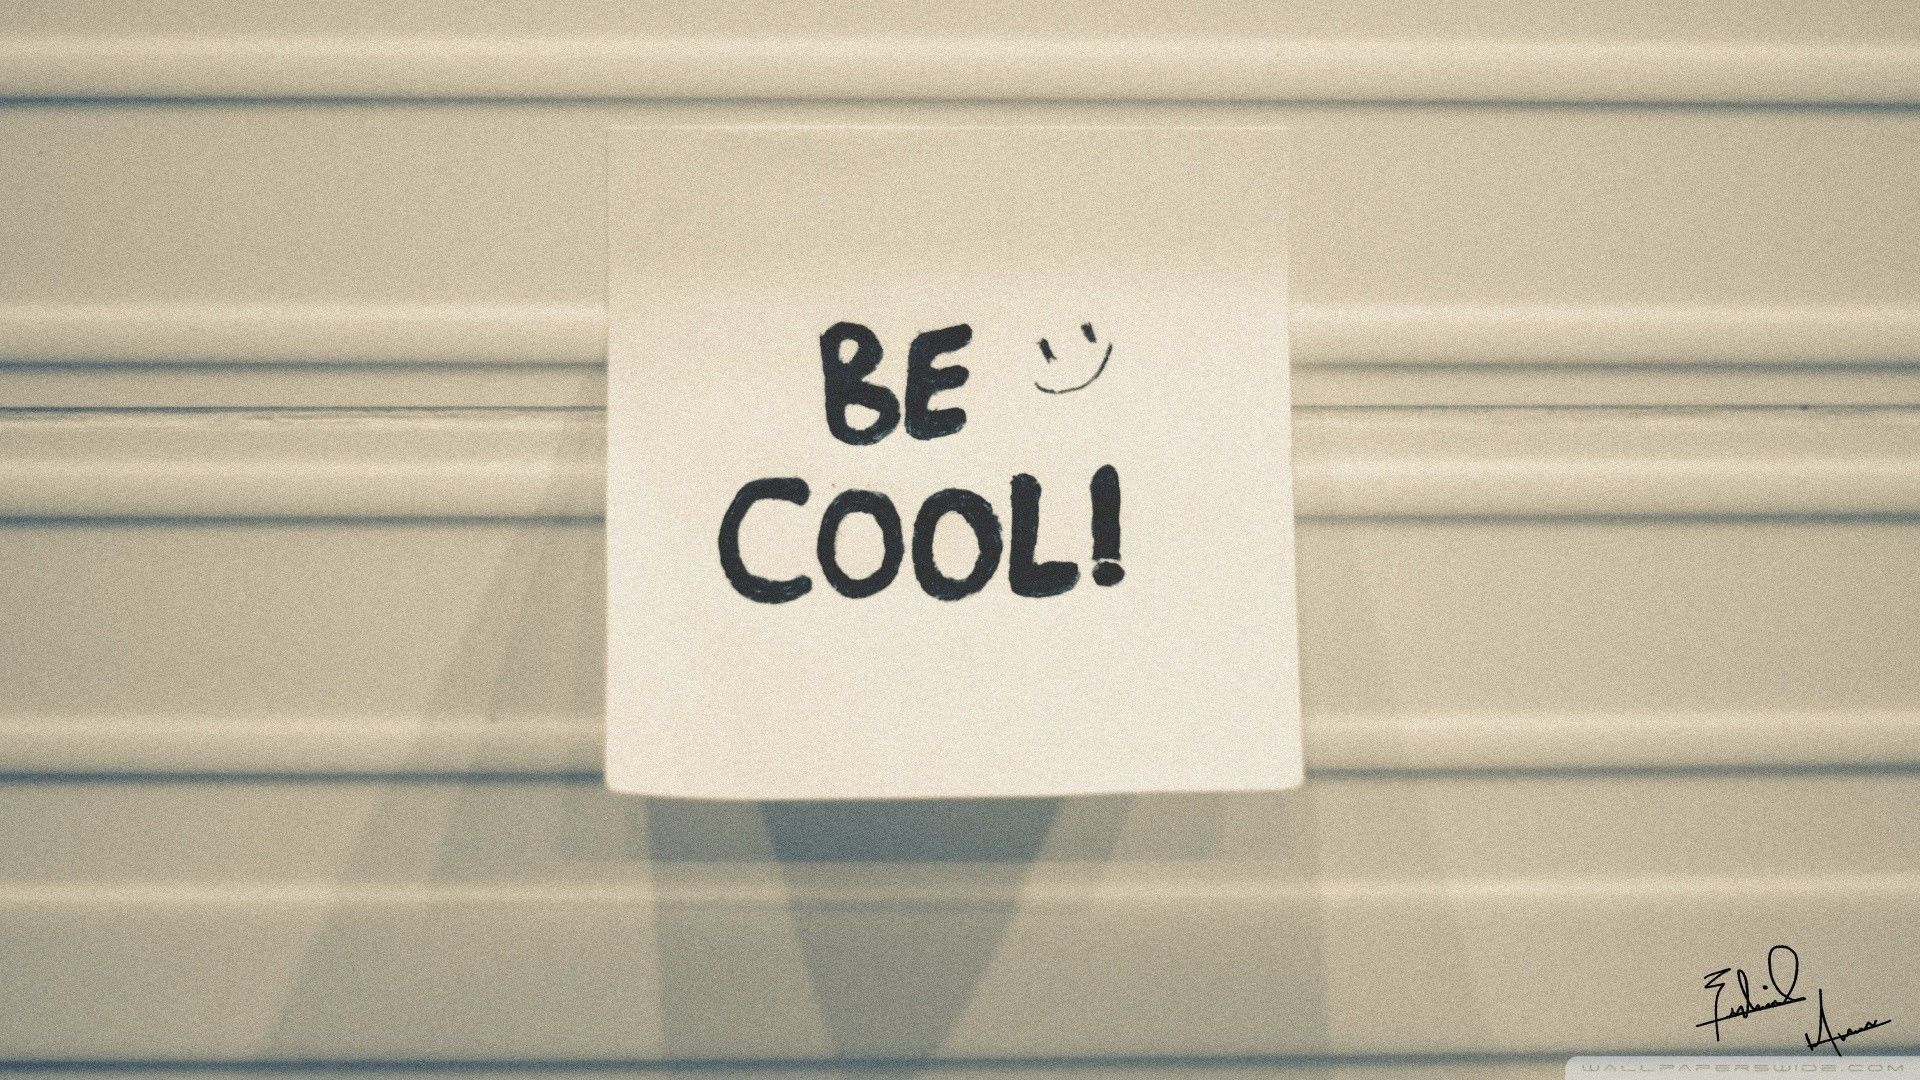 Download-be-cool-with-quotes-HD-Download-be-cool-with-quotes-HD-Download-Do-wallpaper-wpc5804271